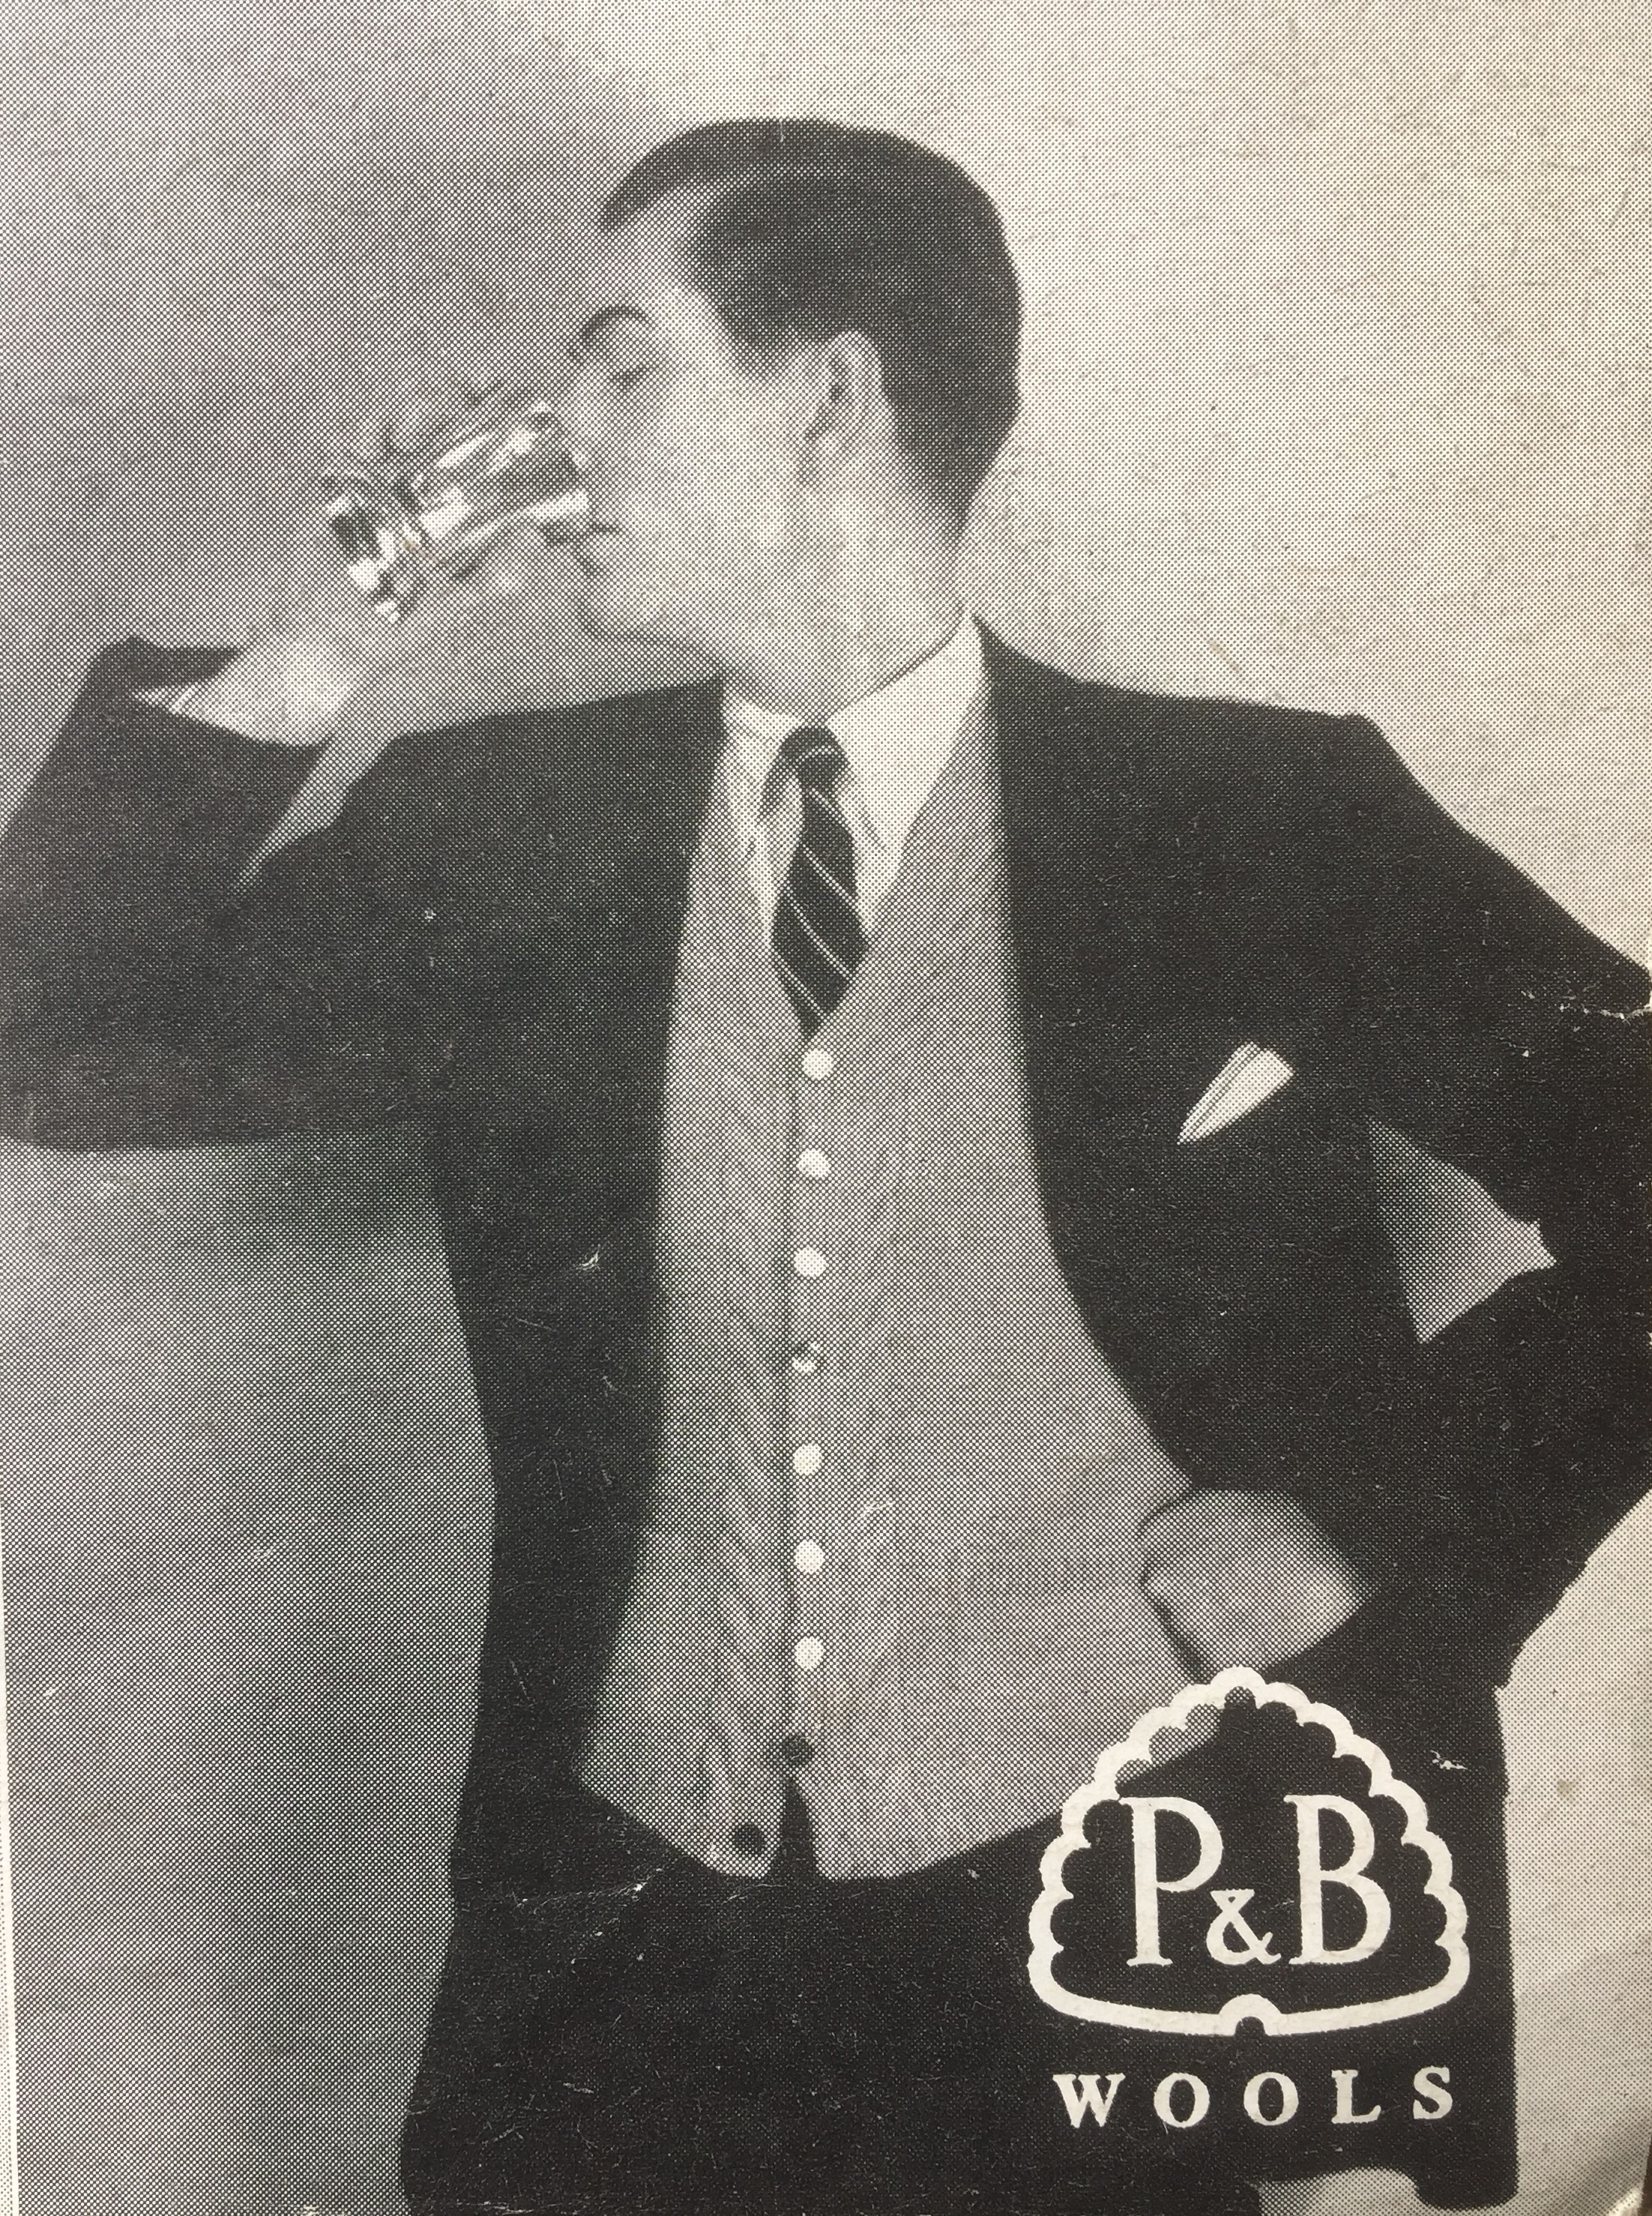 Vintage photo of male sweater model drinking a glass of something alcoholic perhaps